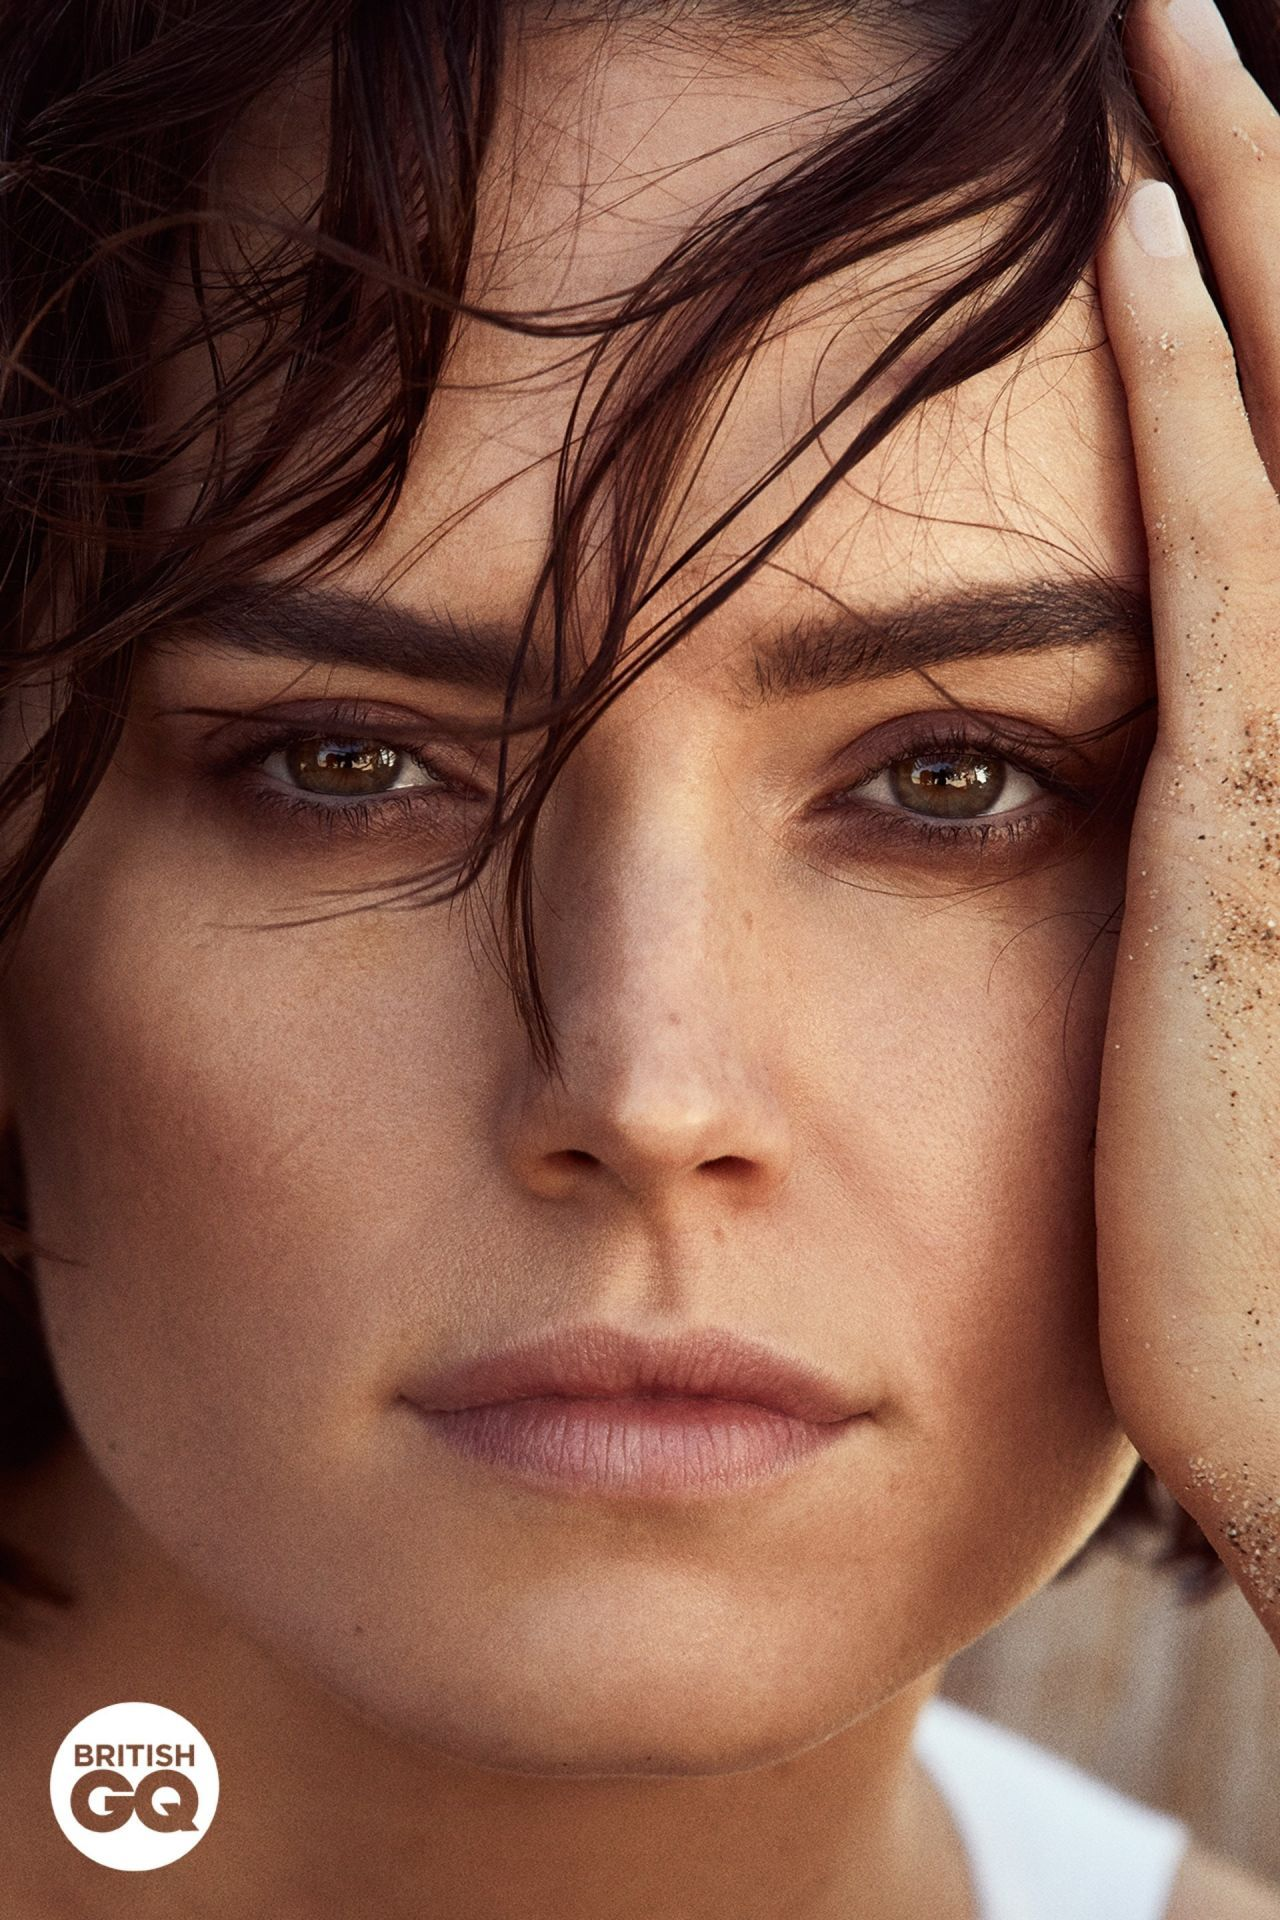 Pin By Emily On Daisy Ridley In 2020 Daisy Ridley Daisy Ridley Star Wars Gq Magazine Covers